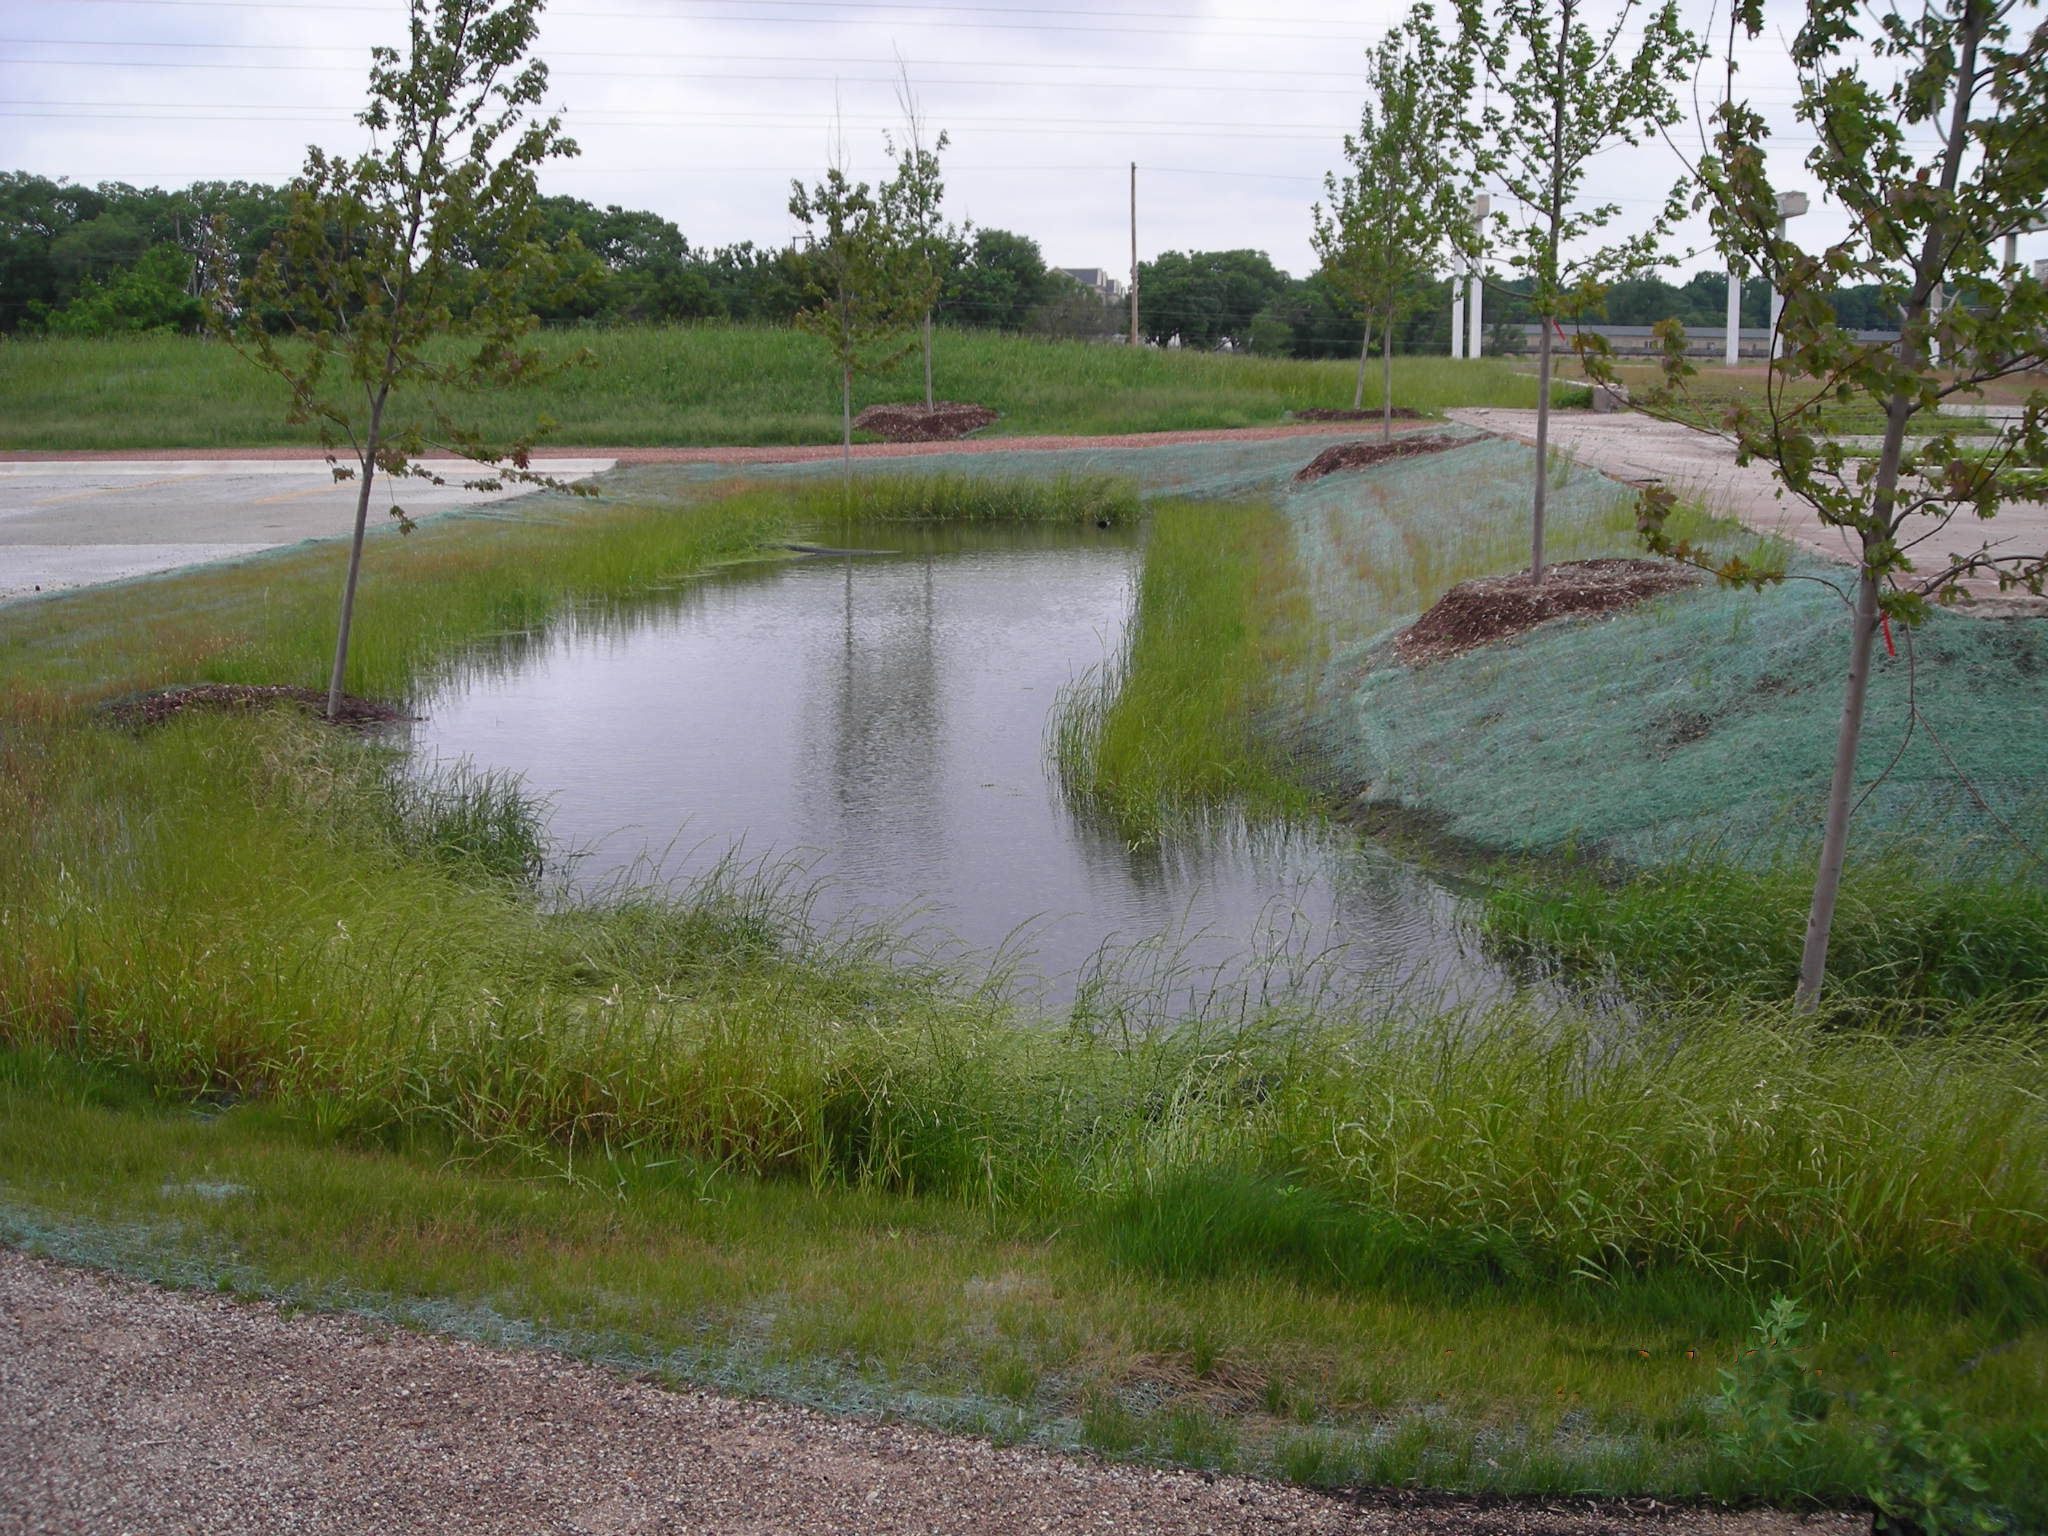 Water runoff and grass at Sylvan Slough Naturalized Park